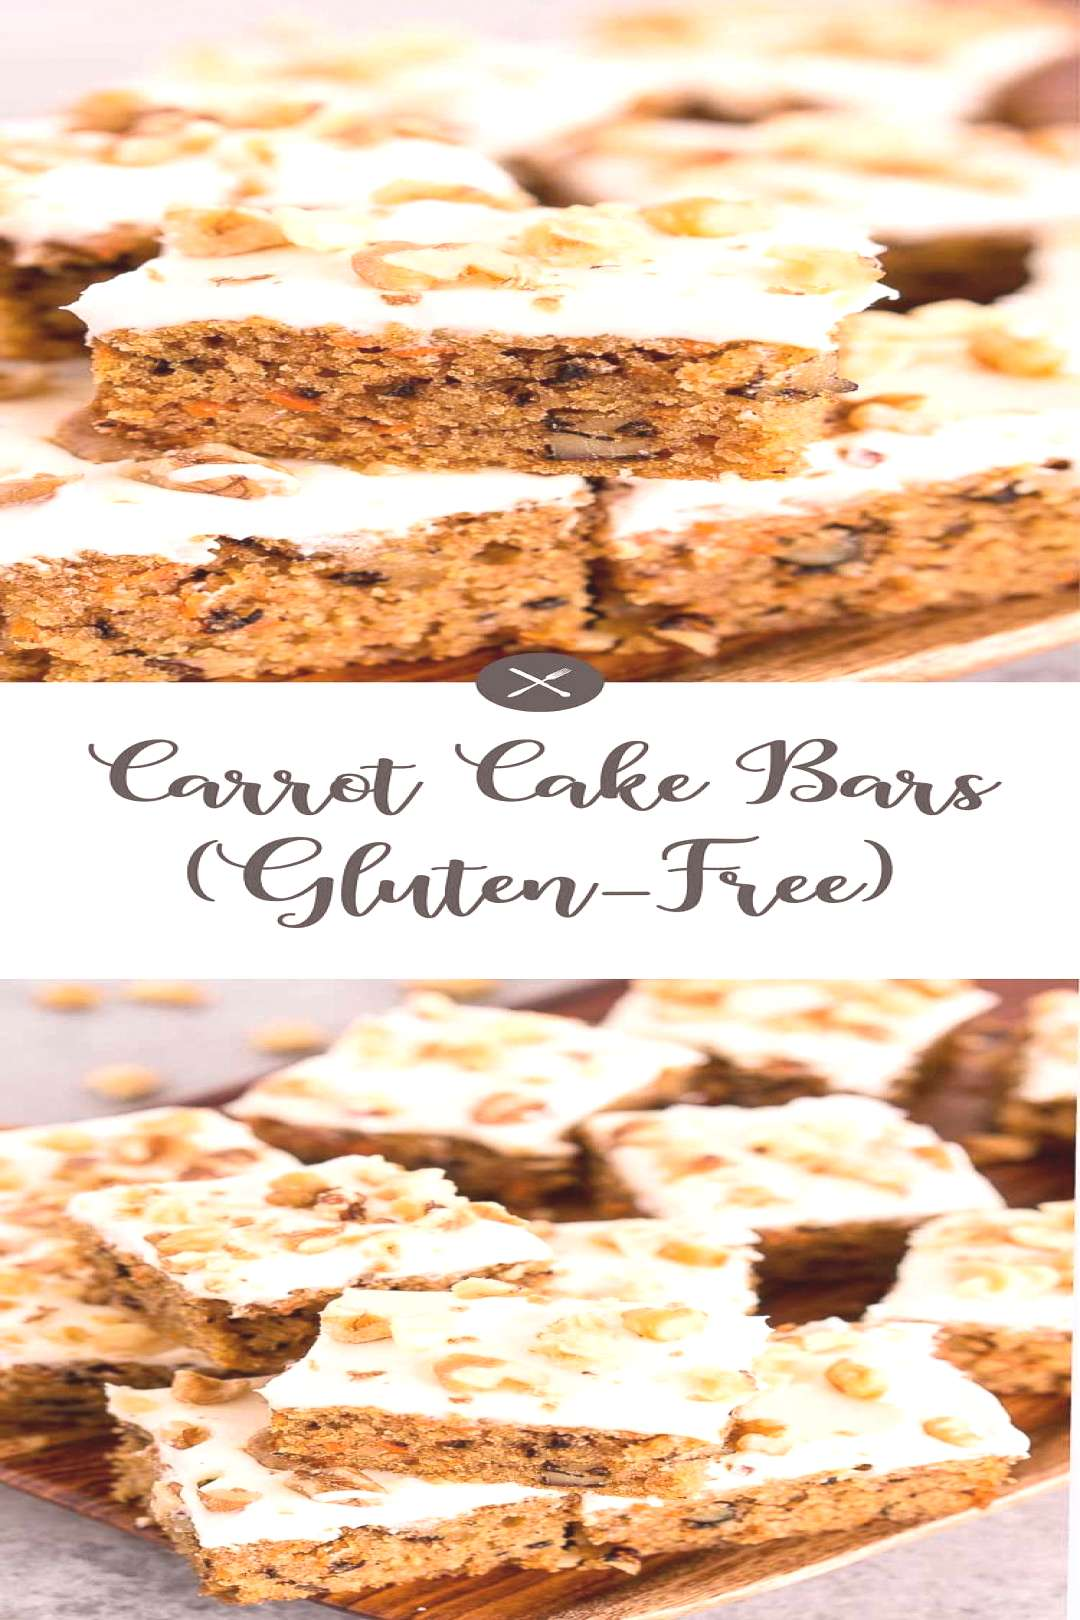 These carrot cake bars are delicious, perfectly moist and soft - easy dessert for any holiday. Simp